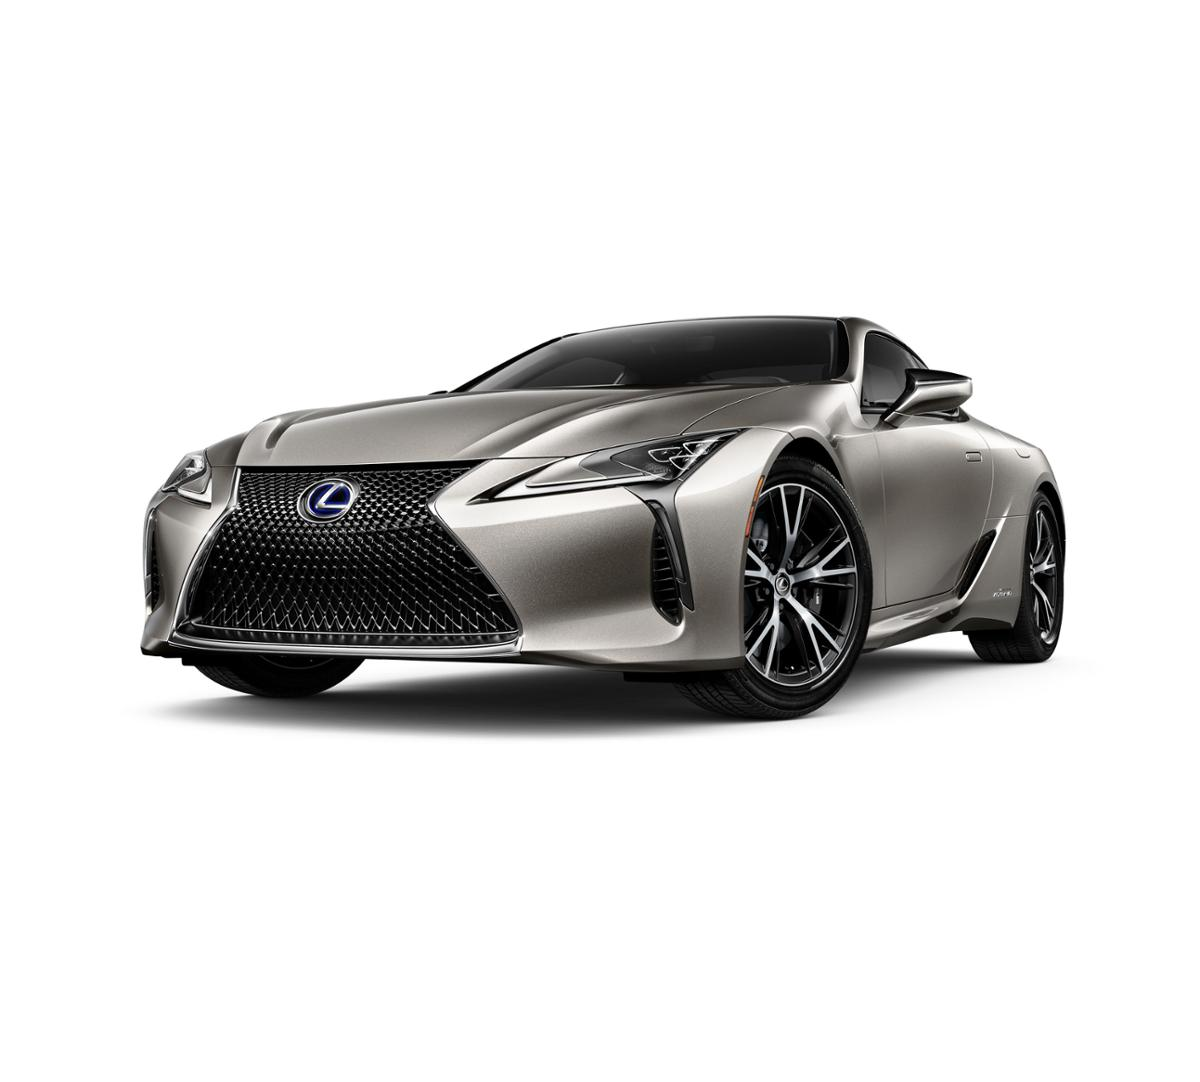 2018 Lexus LC 500h Vehicle Photo in Houston, TX 77074